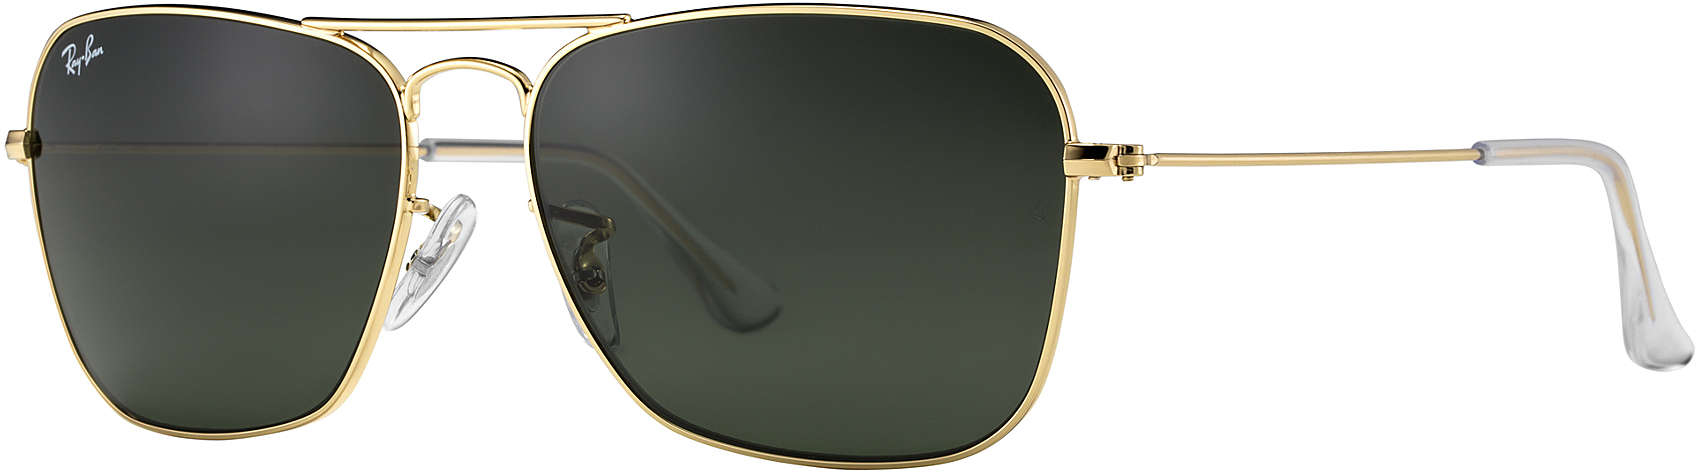 35eba0676cb Ray-Ban Caravan Sunglasses RB3136